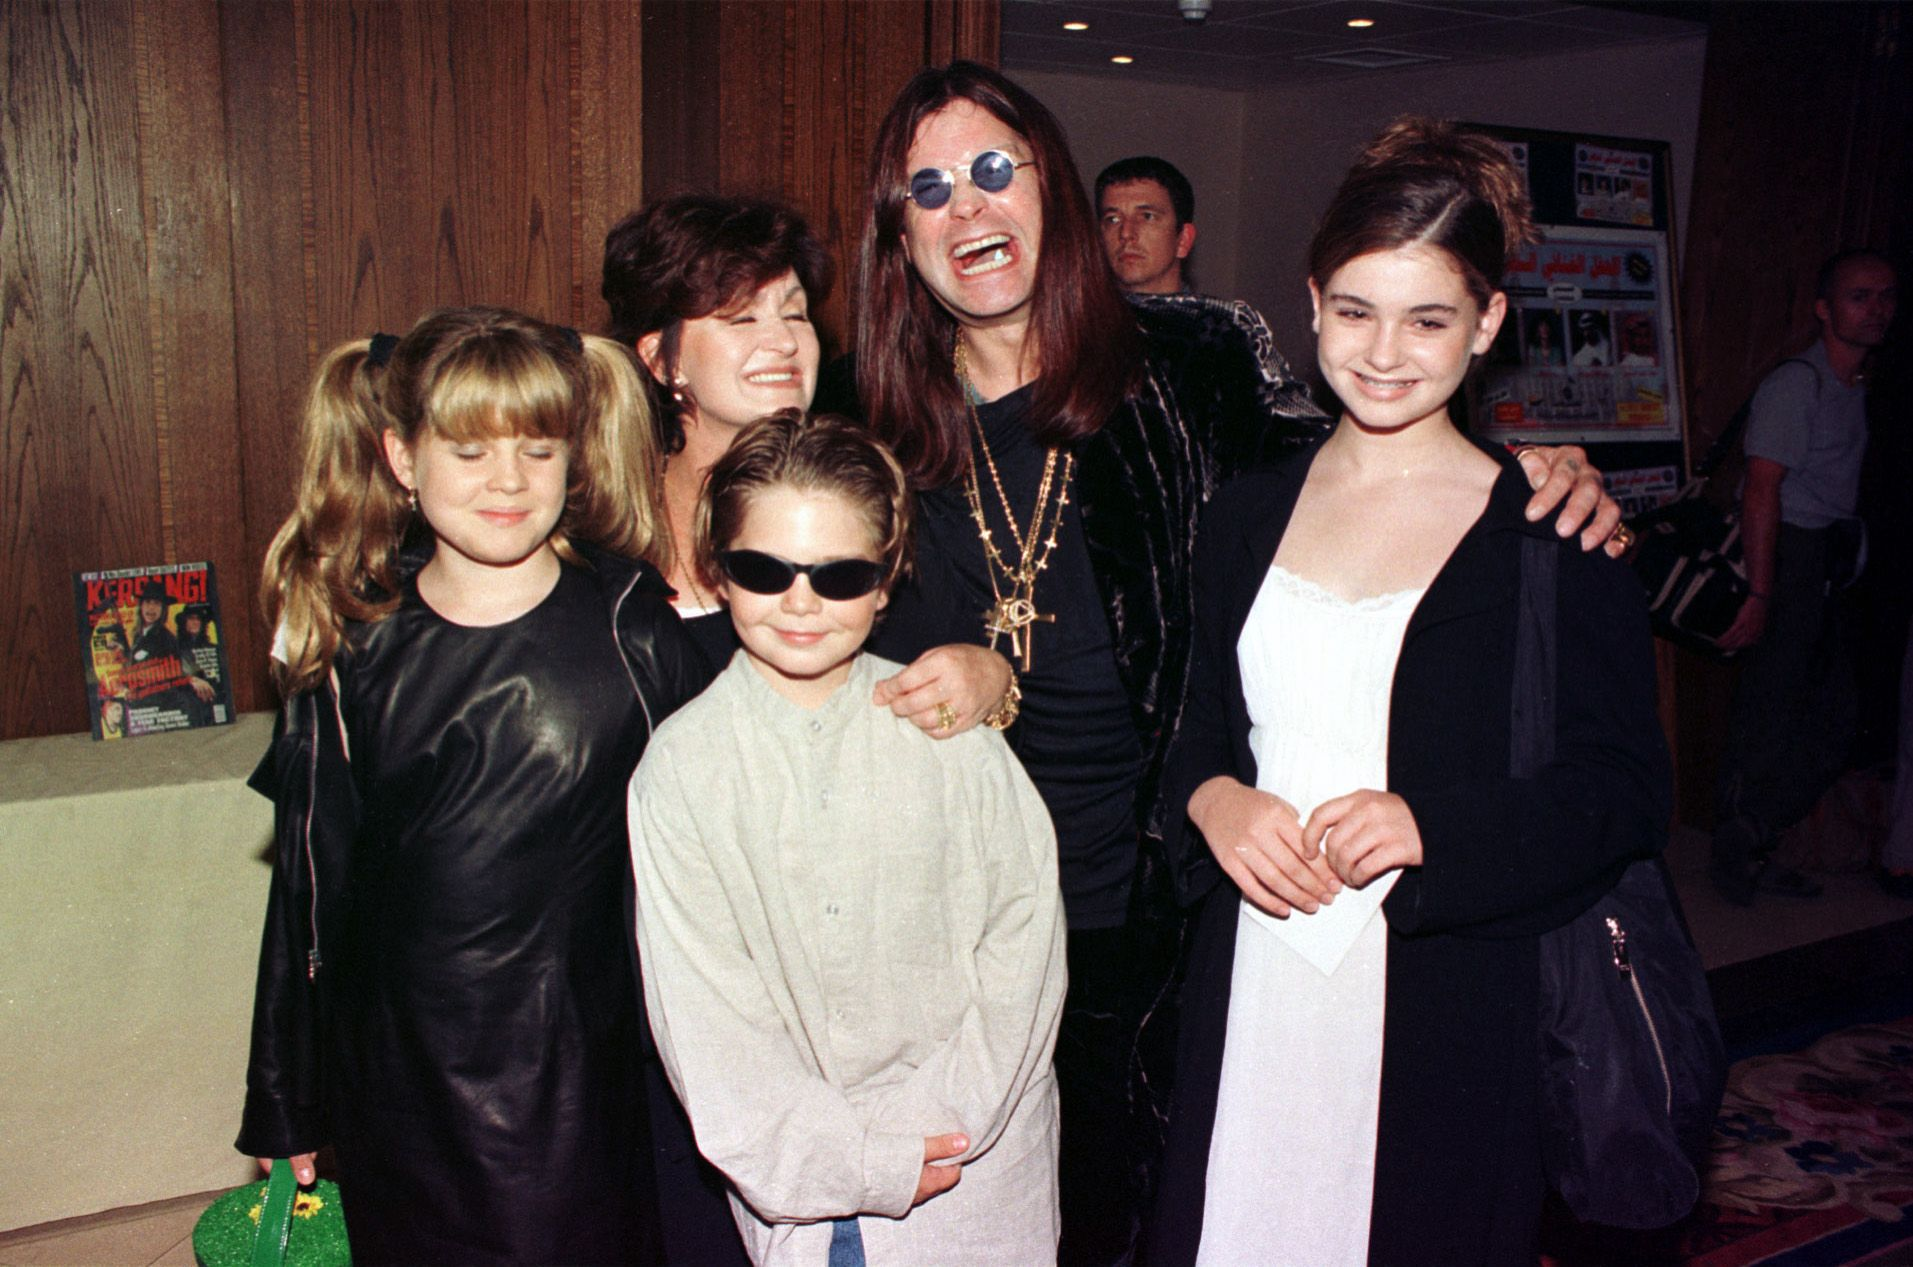 Ozzy Osbourne, wife Sharon and children Kelly, Jack and Aimee at the Kerrang Awards on August 21, 1997 (Photo: Getty Images